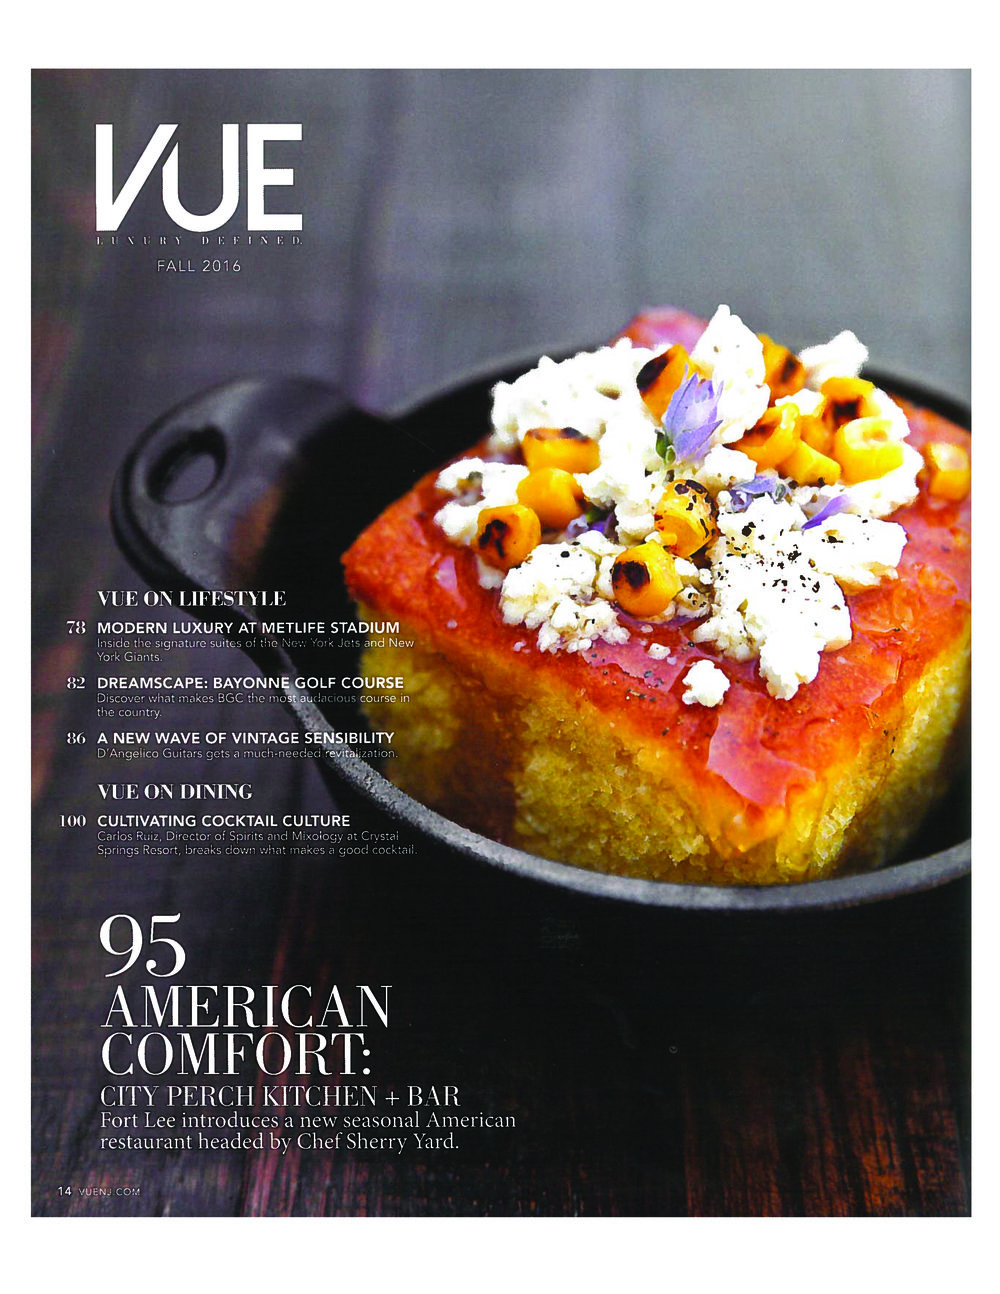 IPIC_CITYPERCH_FortLee_Press_1116_VueMag_Pg2.jpg